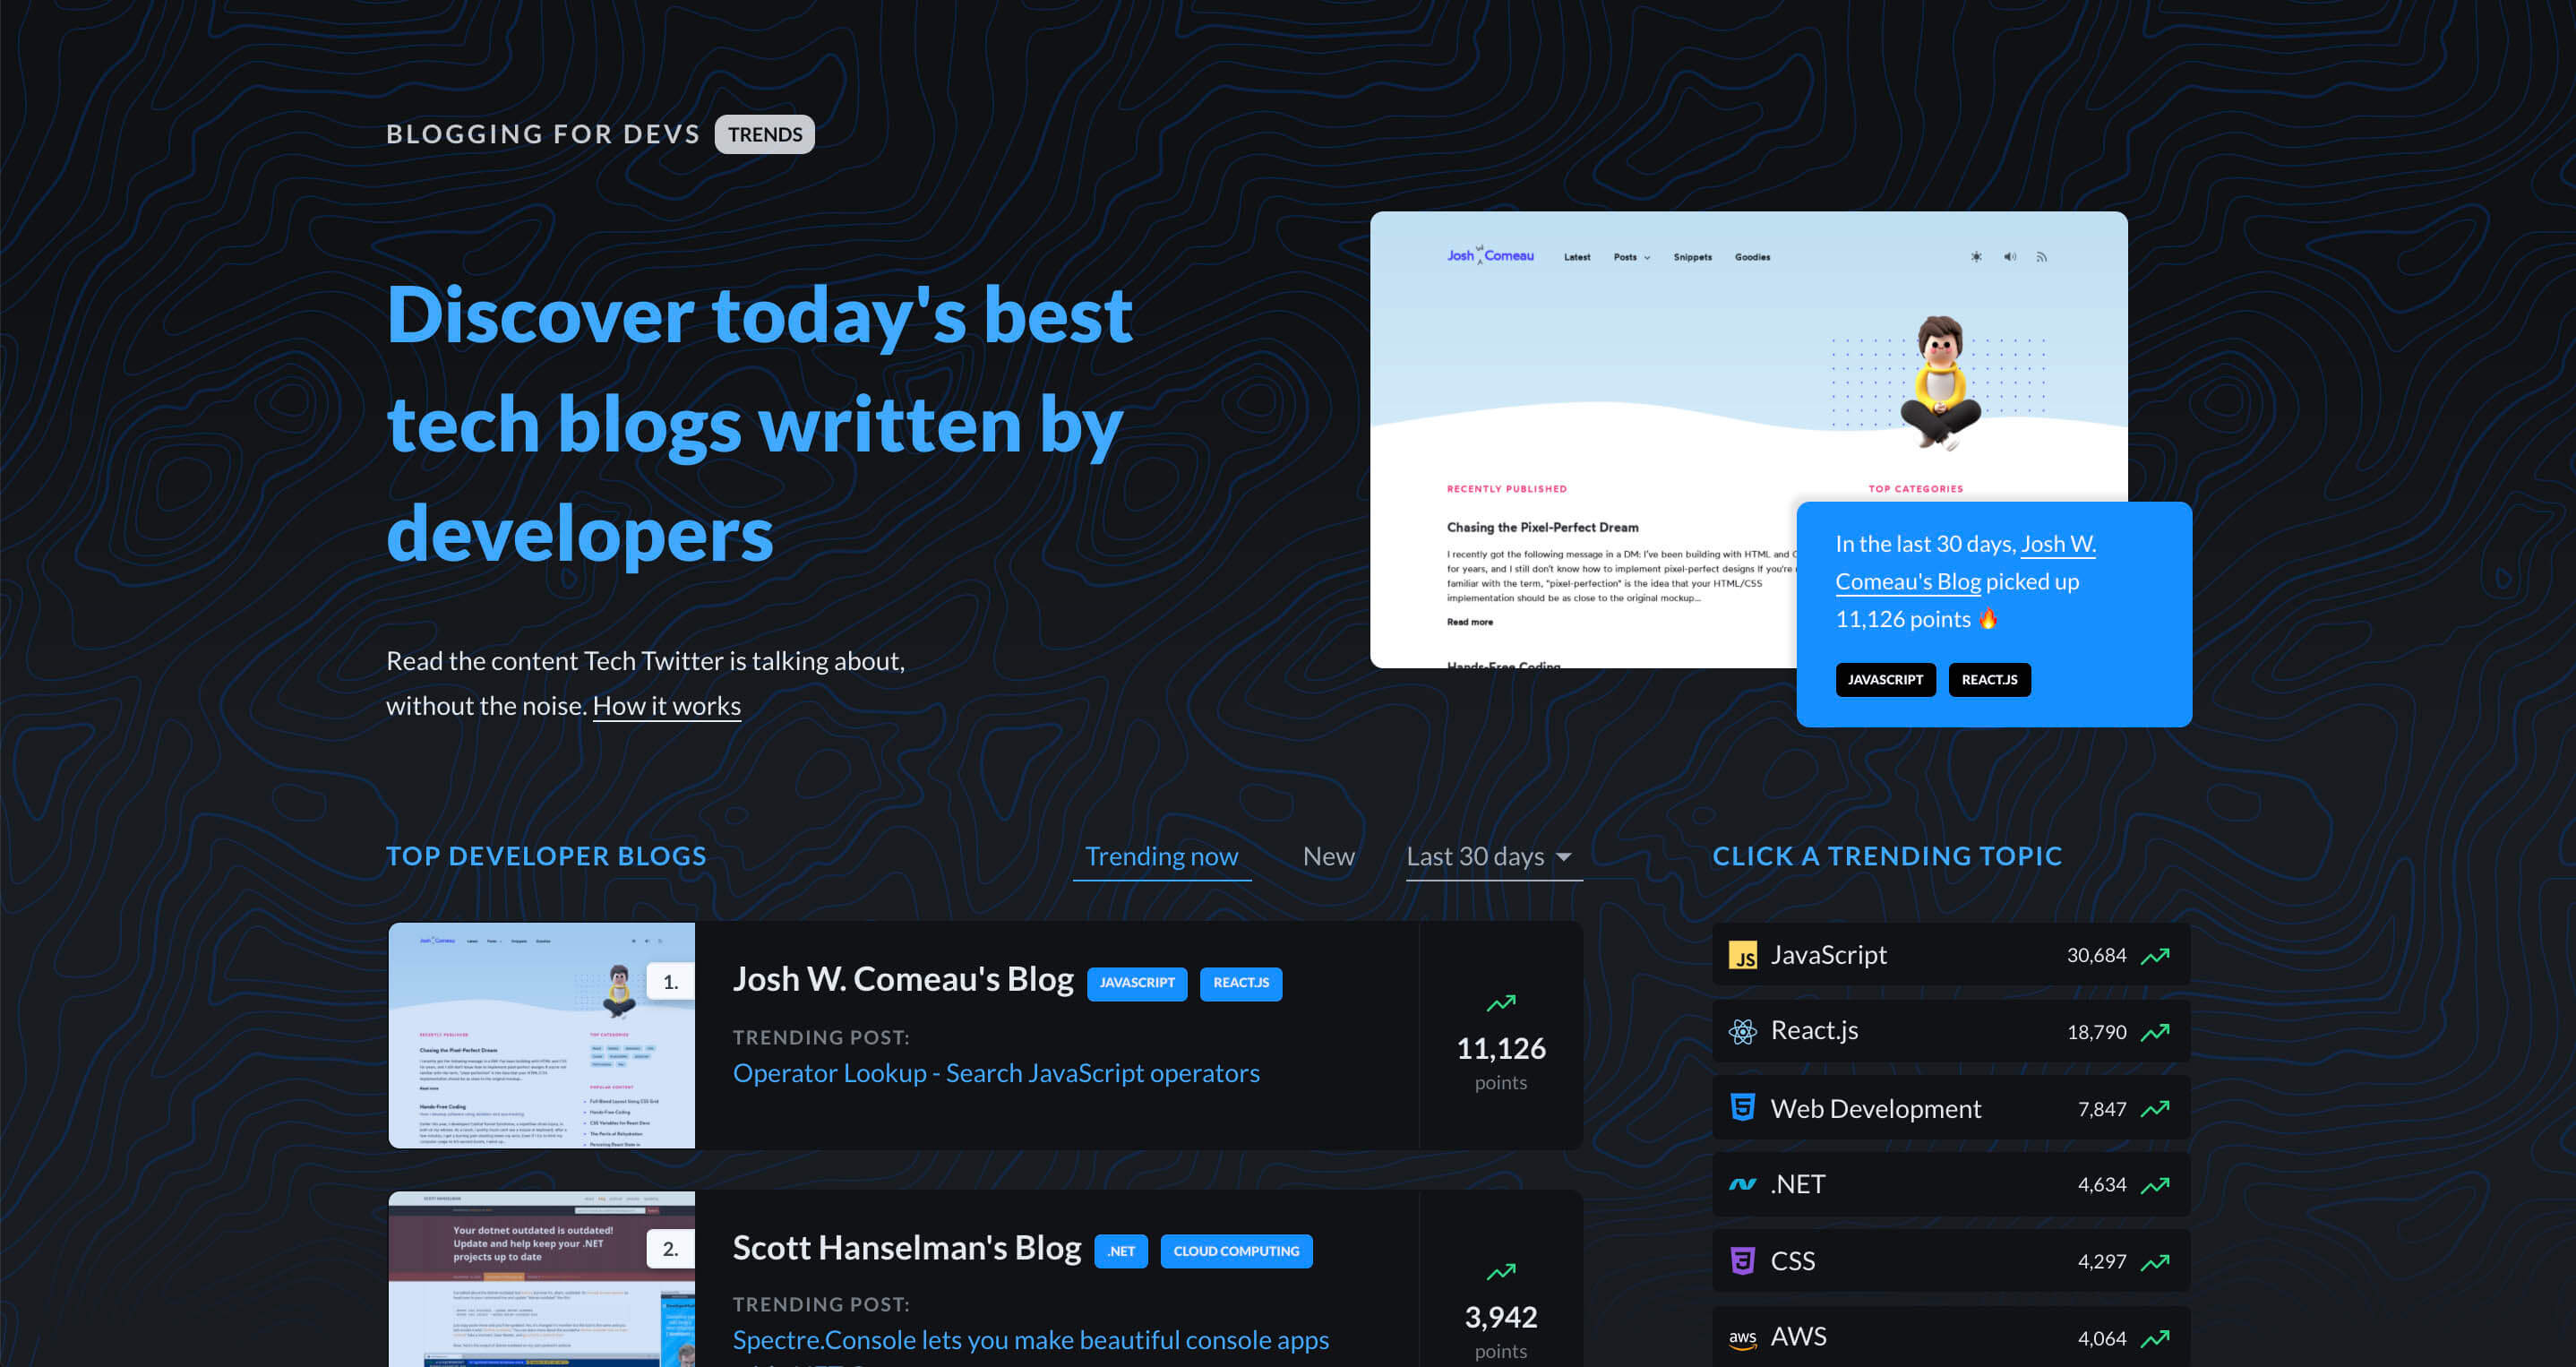 Best developer blogs